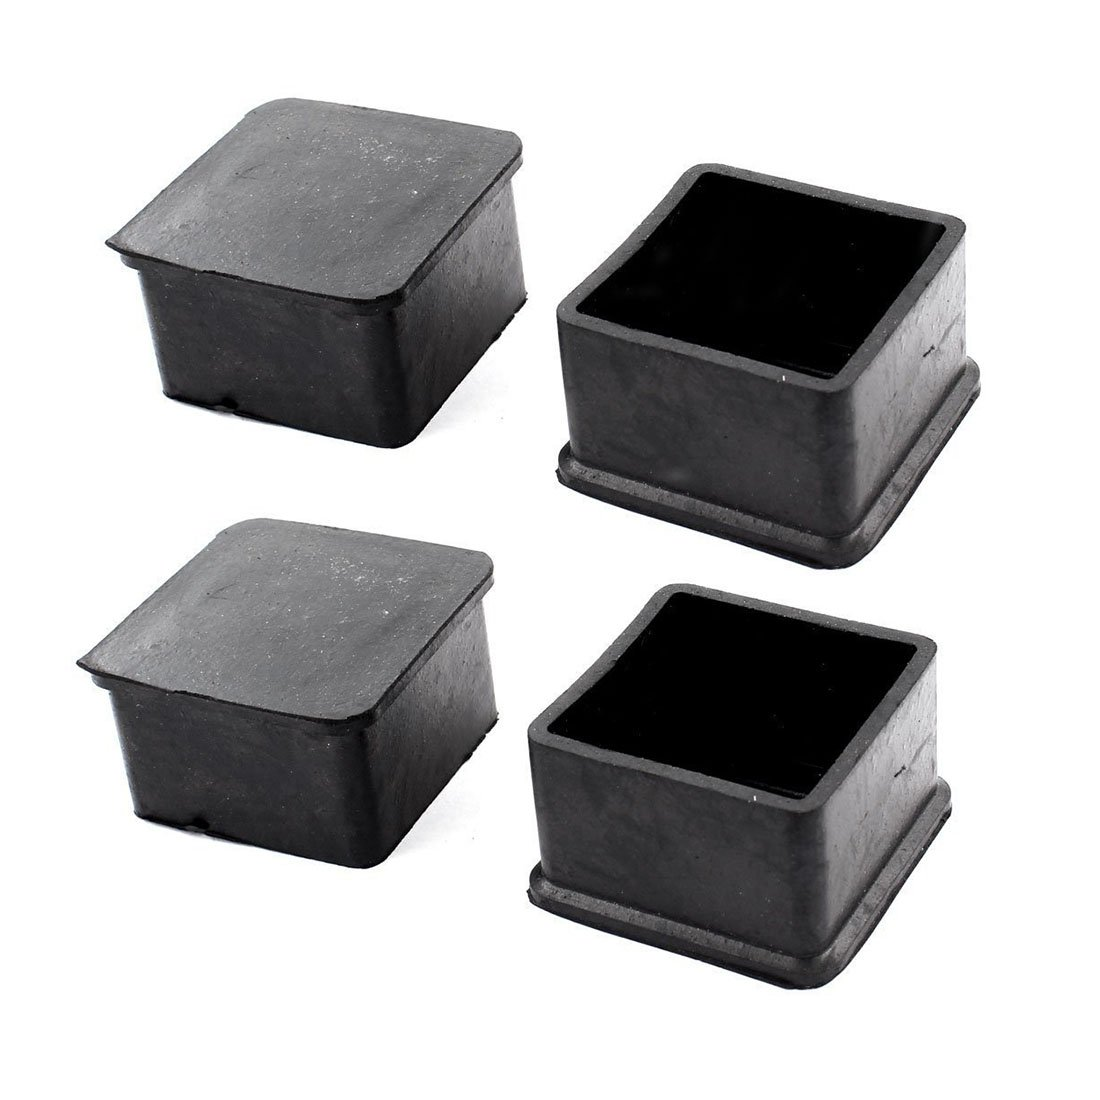 Flyshop Chair Leg Caps Furniture Table Covers Floor Protectors Non-Slip Rubber Square Legs 4 Pack,50mm,2 inch